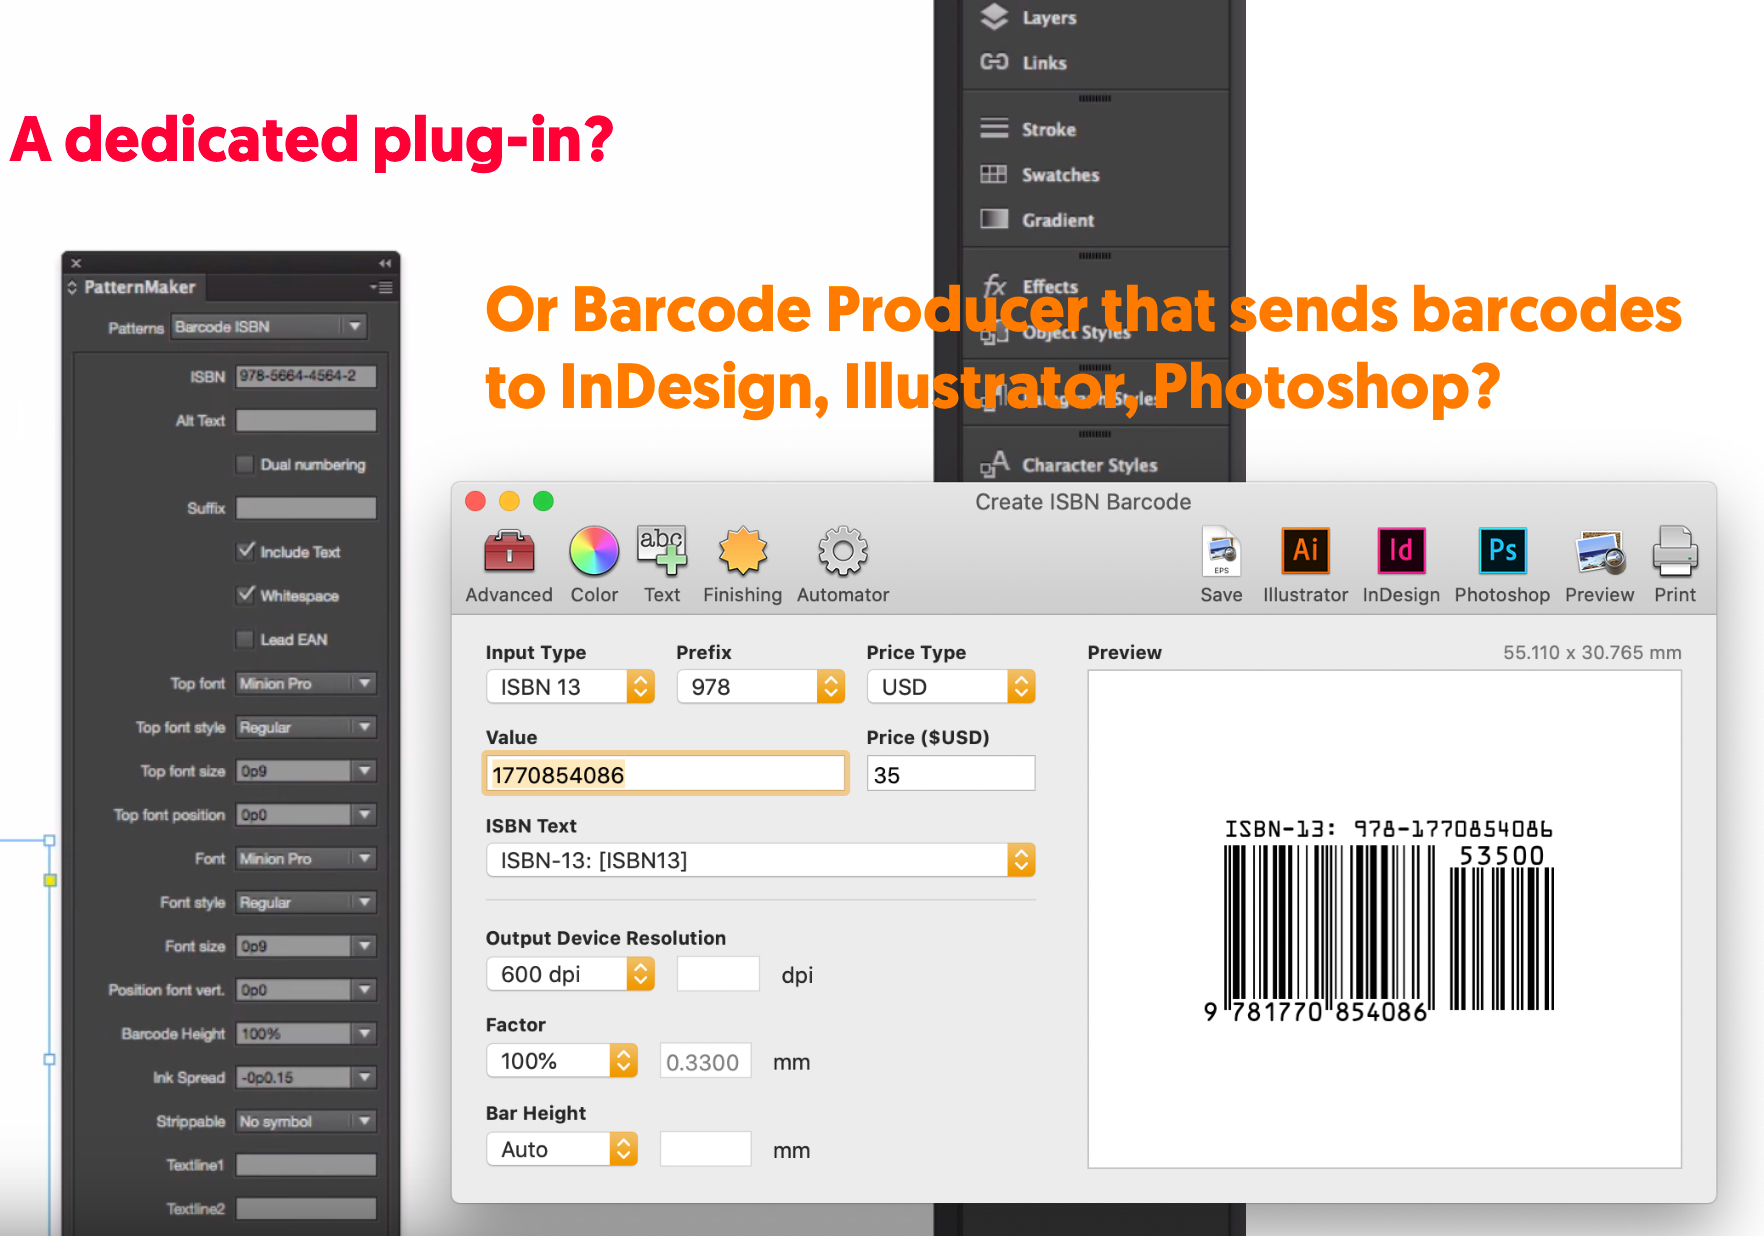 Visual comparison of an InDesign plug-in and Barcode Producer